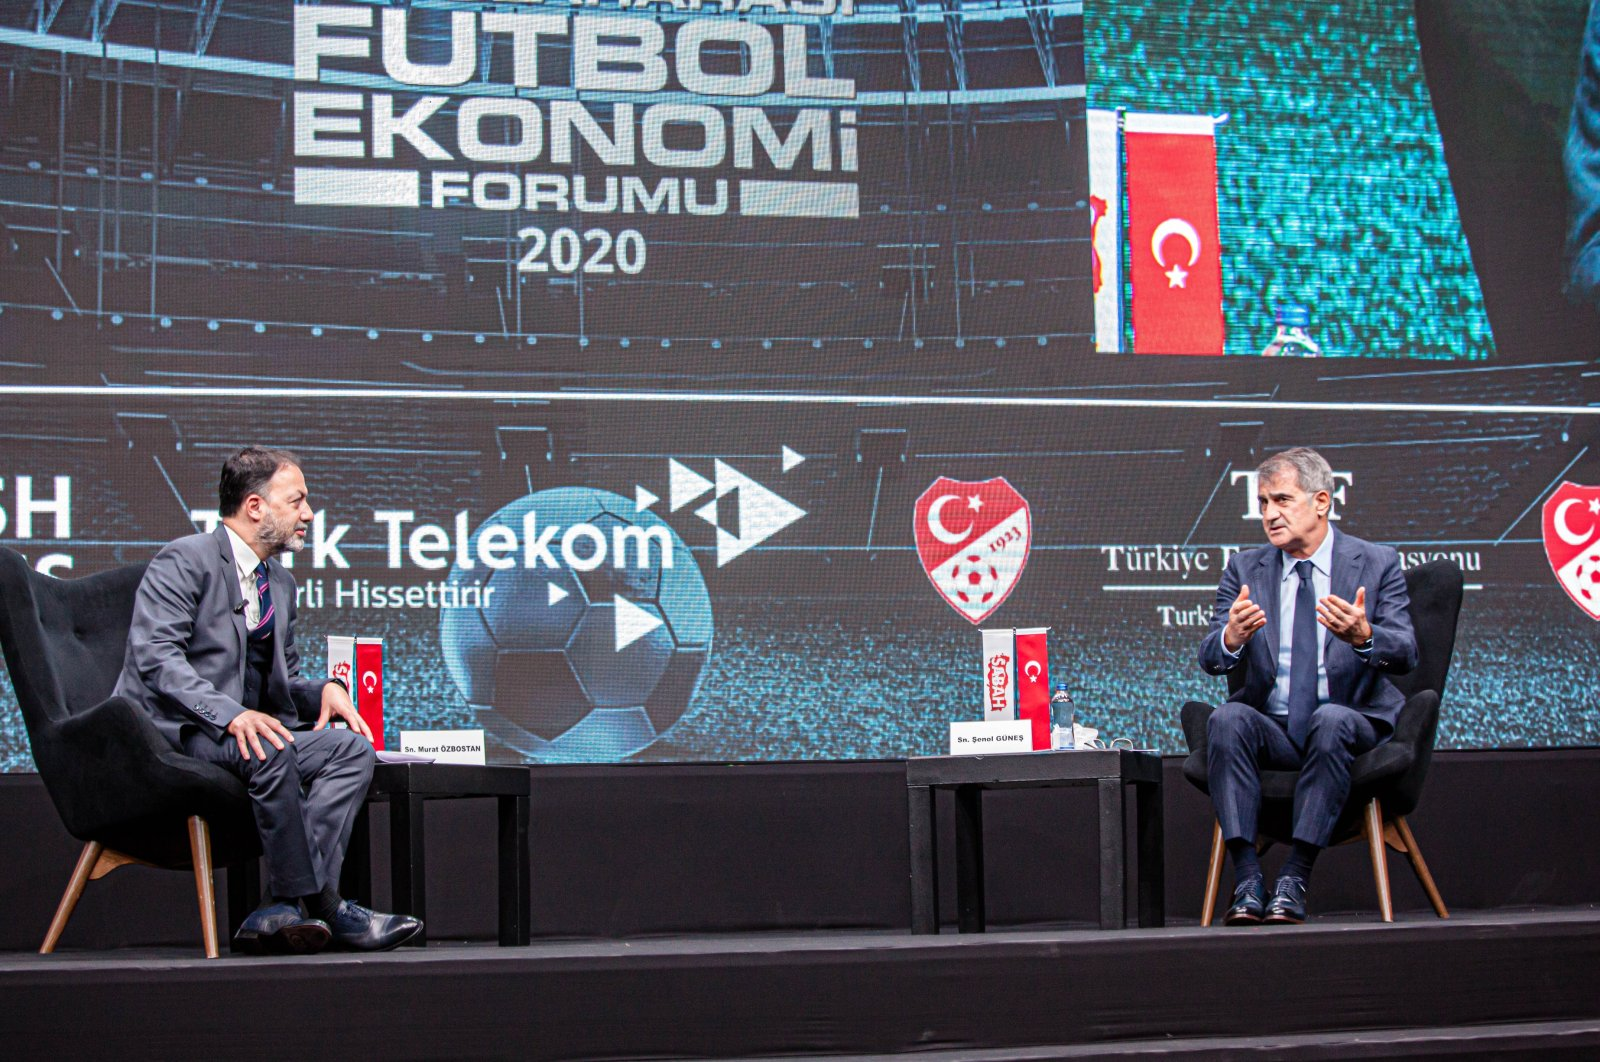 Turkish national team coach Şenol Güneş speaks at the International Football Economy Forum (UFEF), Istanbul, Turkey, Nov. 26, 2020. (Photo by Hatice Çınar)